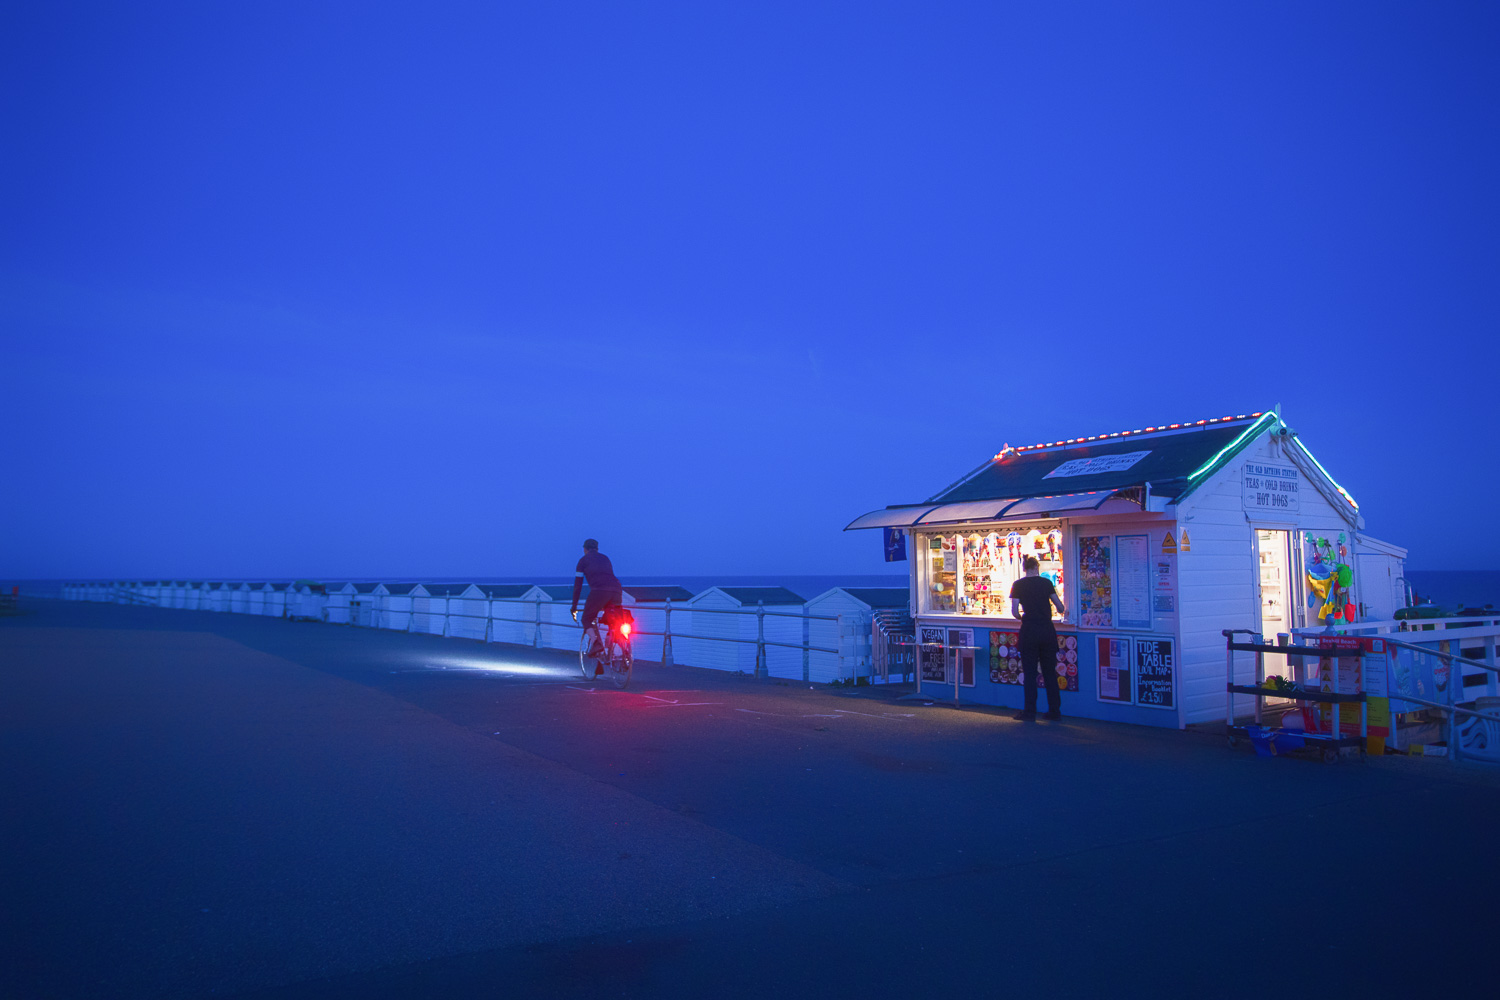 Cyclist pedals past ice cream kiosk on deserted promenade at dusk